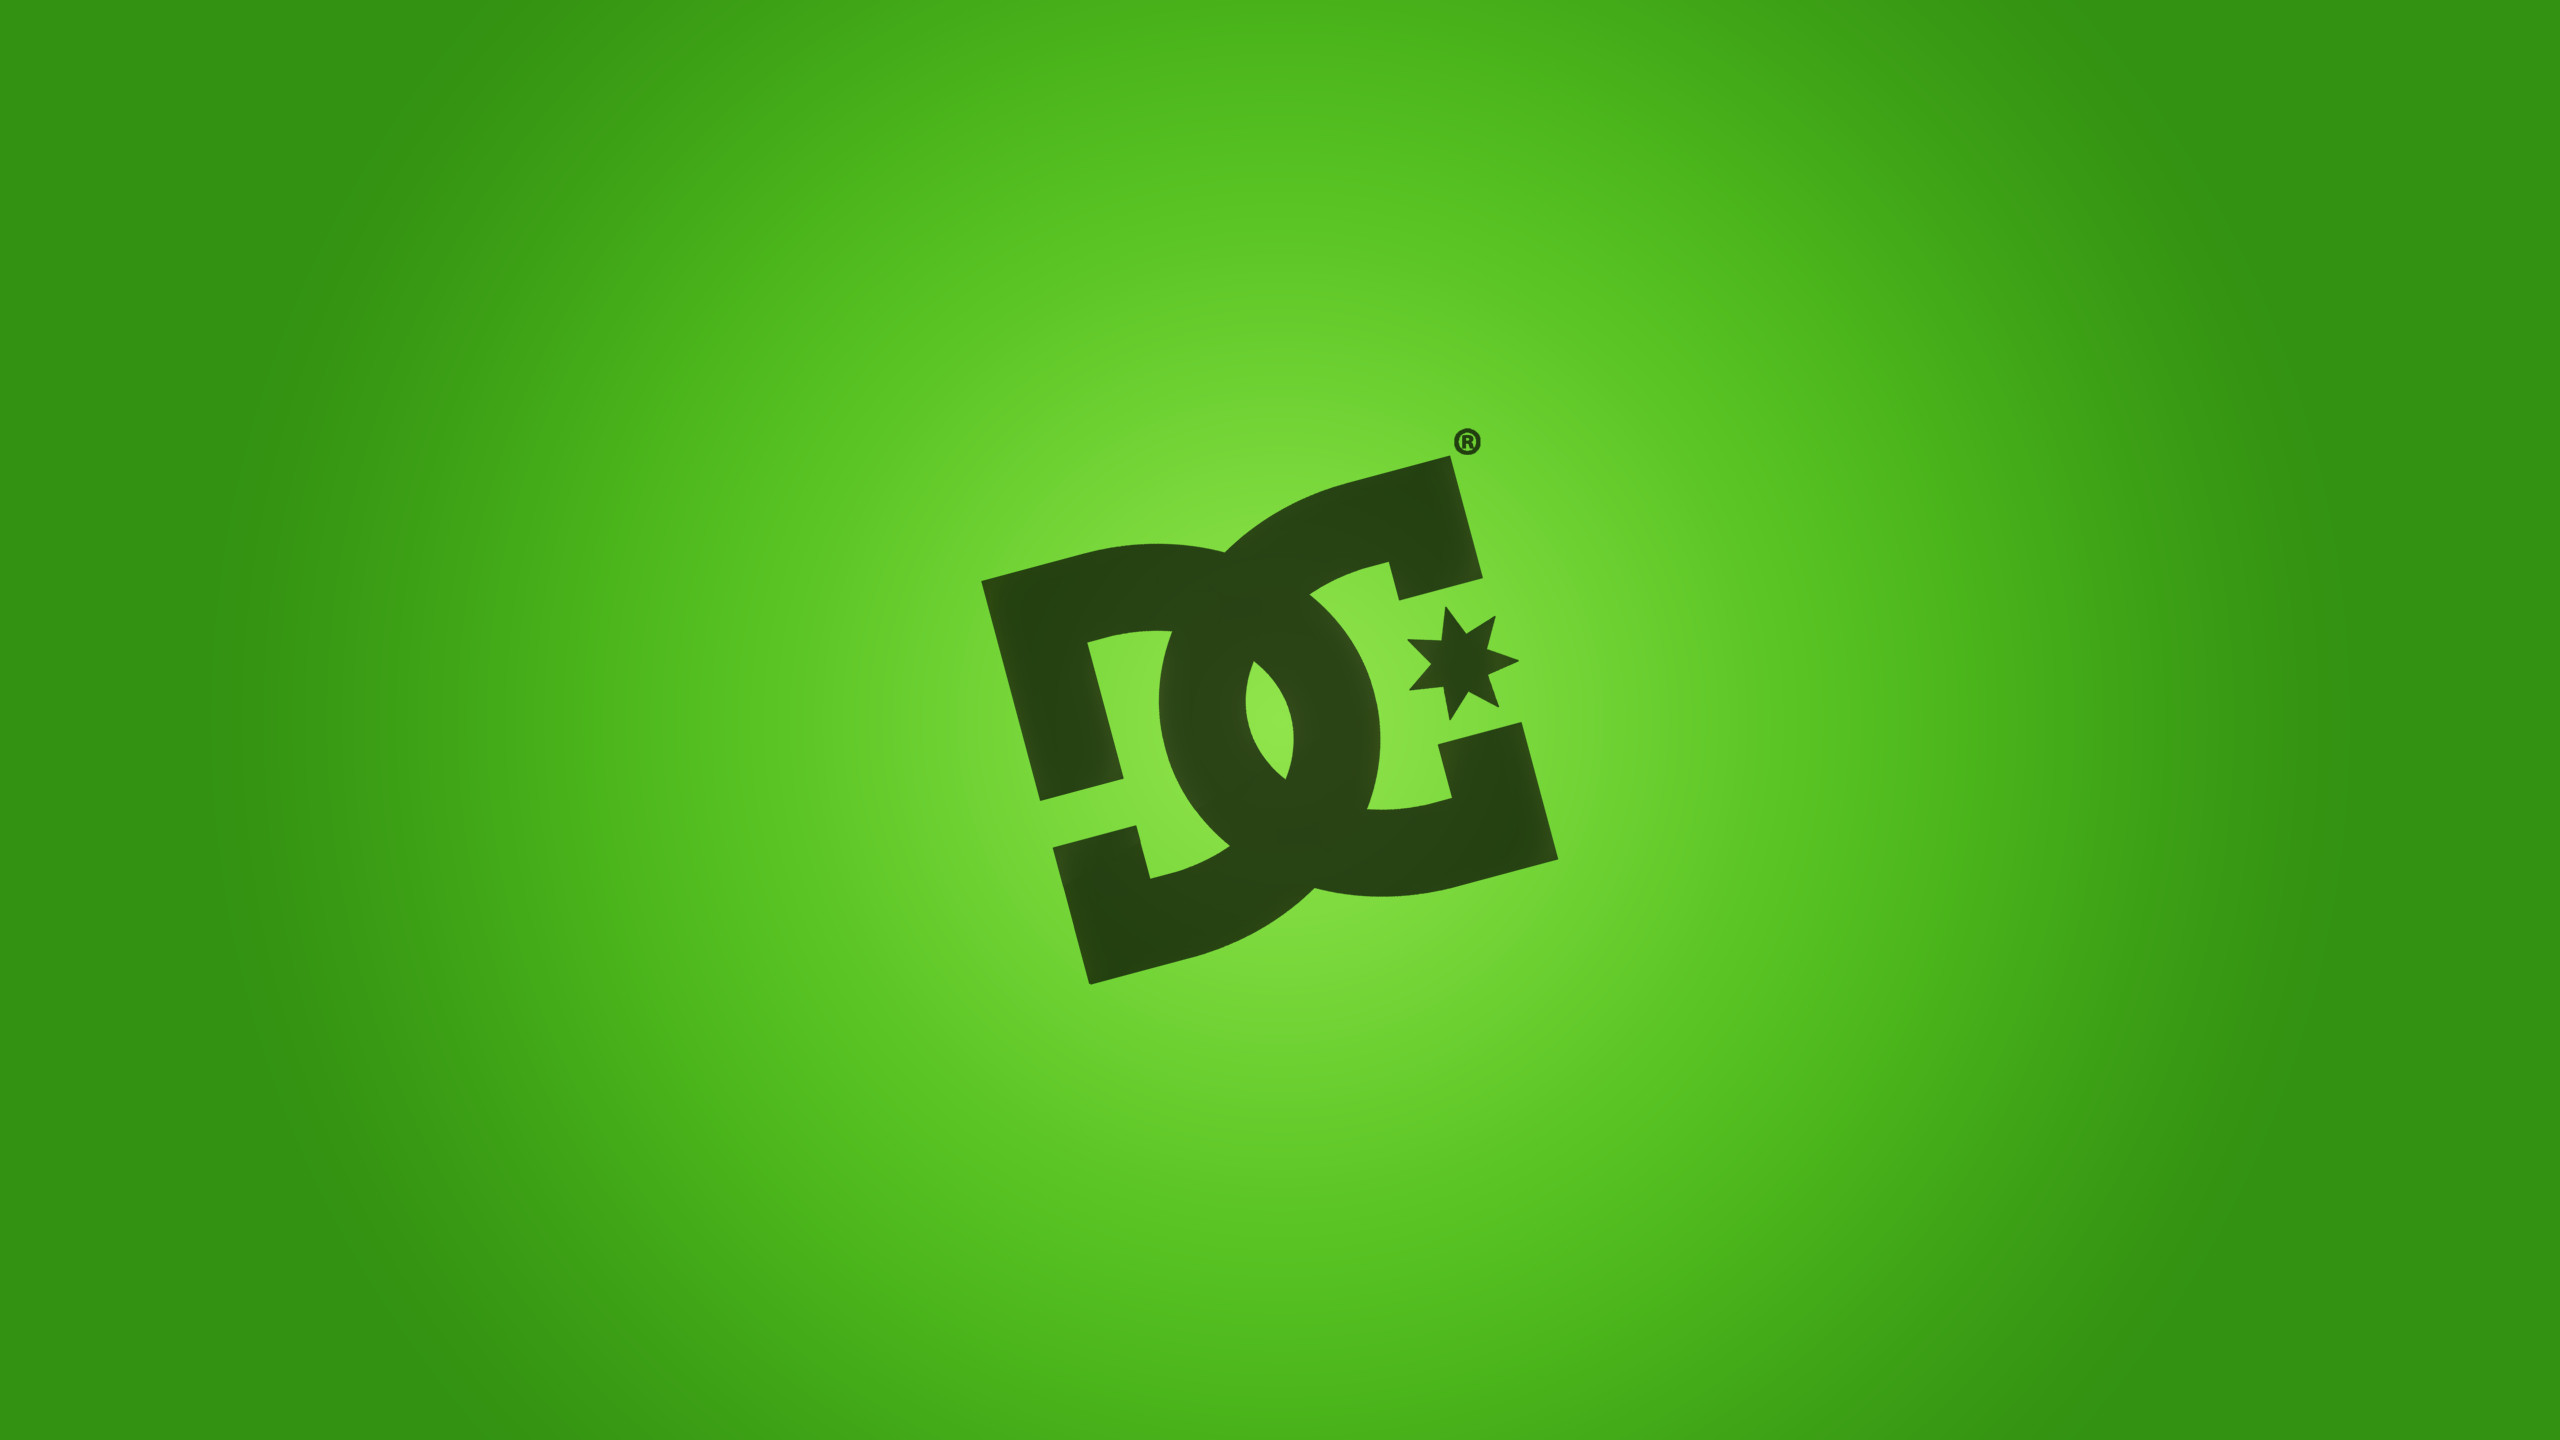 2560x1440 Dc Shoes Logo Wallpaper